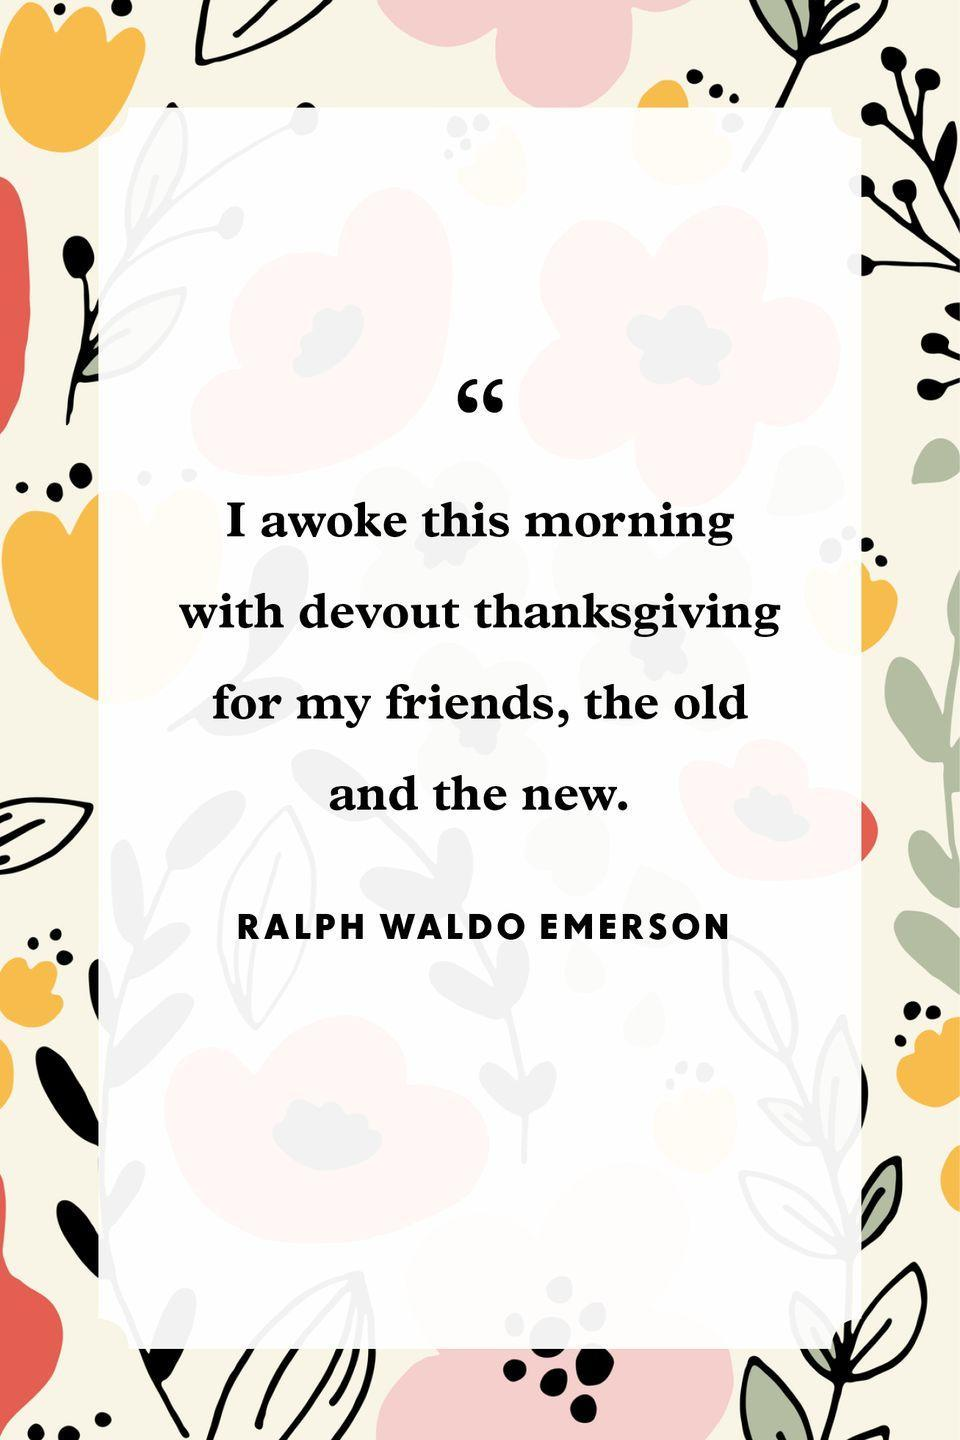 """<p>""""I awoke this morning with devout thanksgiving for my friends, the old and the new.""""</p>"""